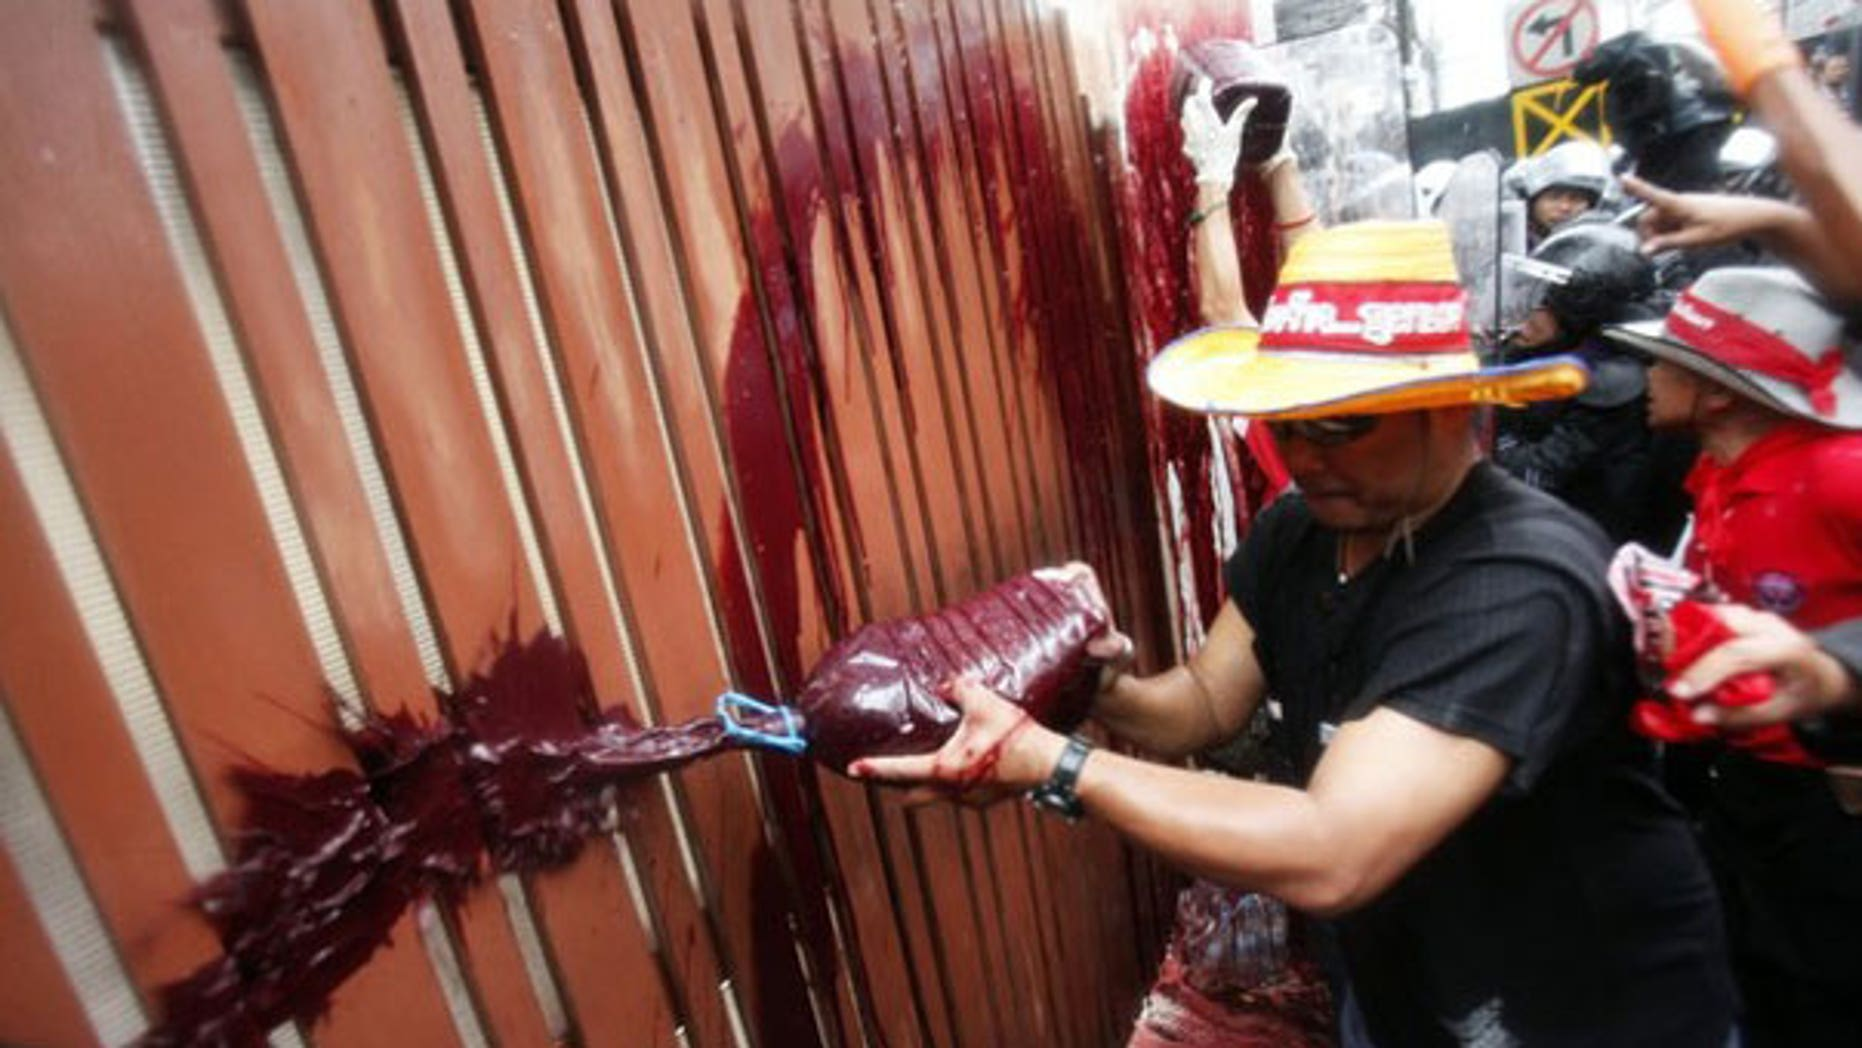 March 17: Anti-government protesters splash human blood on the gates of Prime Minister Abhisit Vejjajiva's home in a shocking attempt to force new elections.